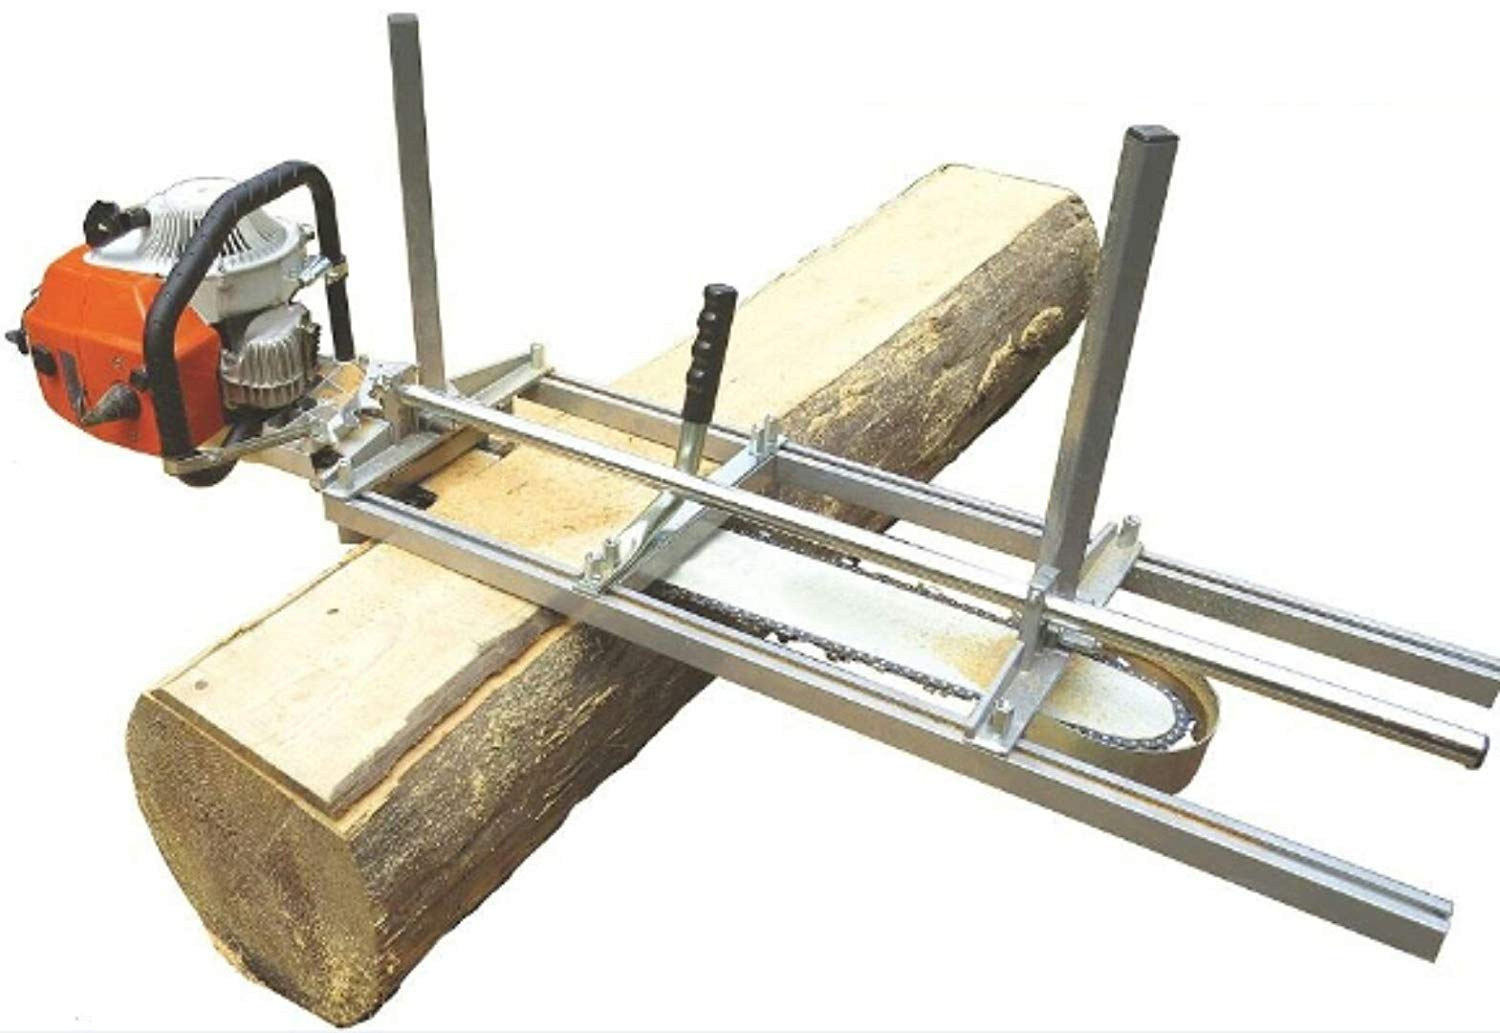 TTF Chainsaw Mill Attachment Chainsaw Milling Planking Milling Bar Planking Cutting Guide Bar Chainsaw Mill Guide Sawmill For Chainsaw Portable Chain Sawmill Attachment (14''-36'') by TTF (Image #1)